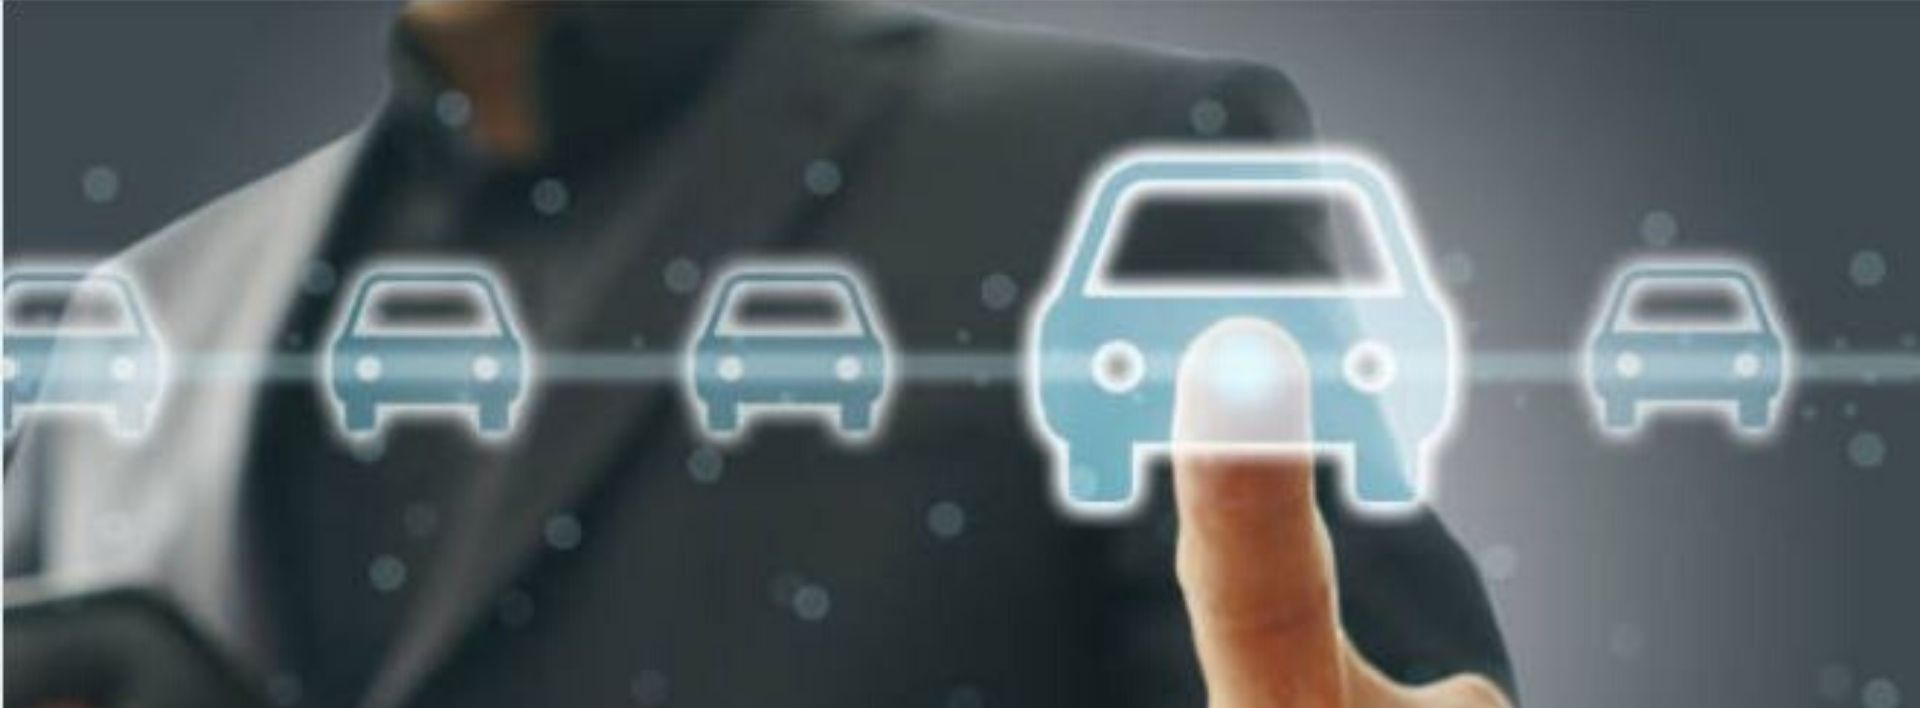 Sunco Hyundai has touchless vehicle delivery and pick up